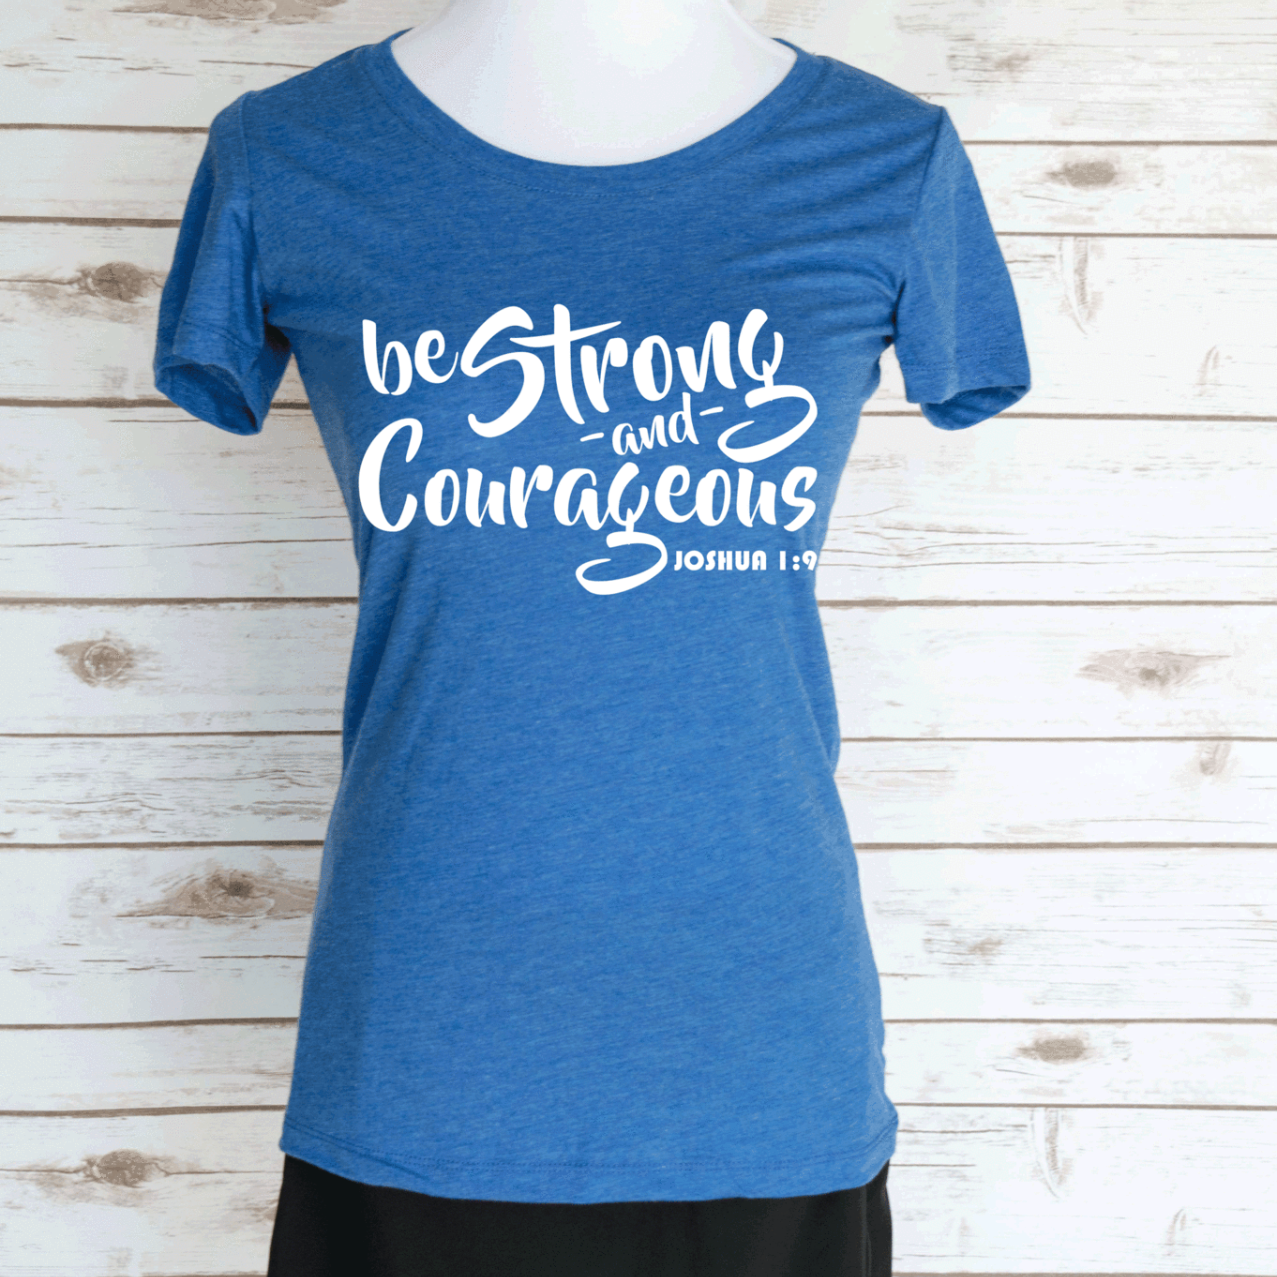 Be Strong & Courageous. Joshua 1:9 Bible Verse. Christian Quote. Scoop Neck Triblend Tee.